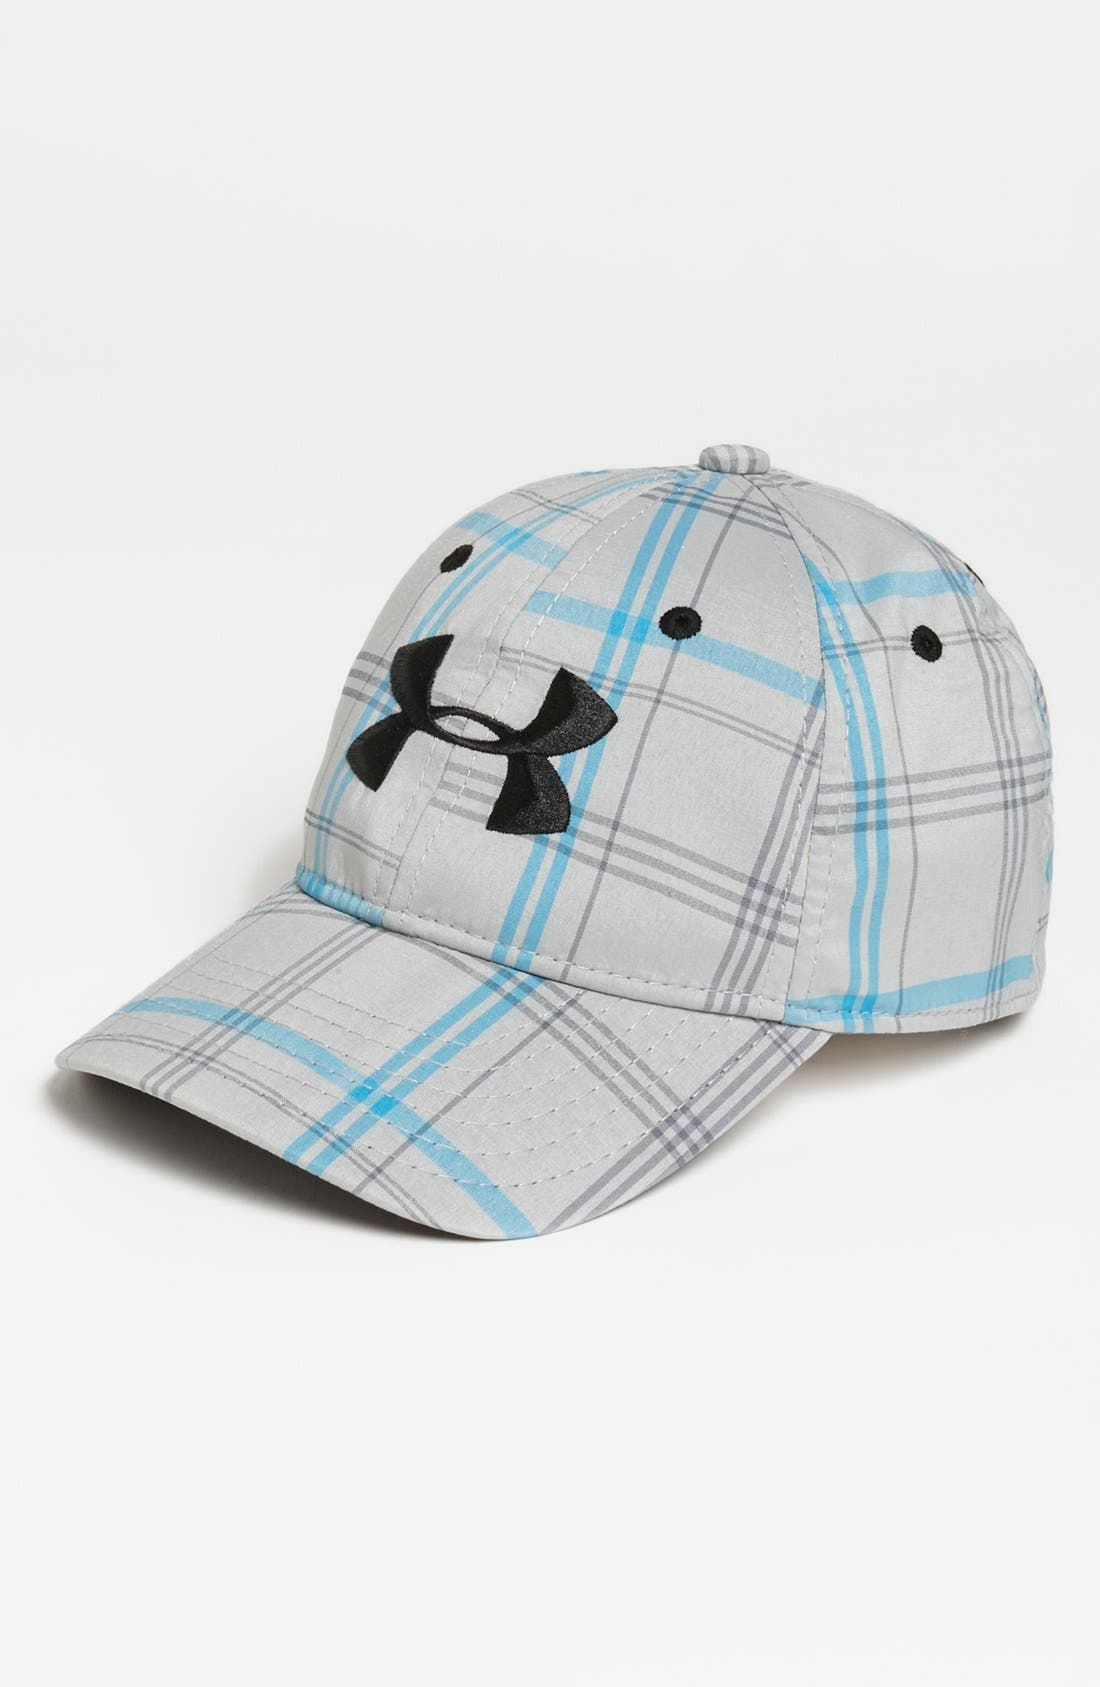 Alternate Image 1 Selected - Under Armour 'Forged' Fitted Baseball Cap (Boys)